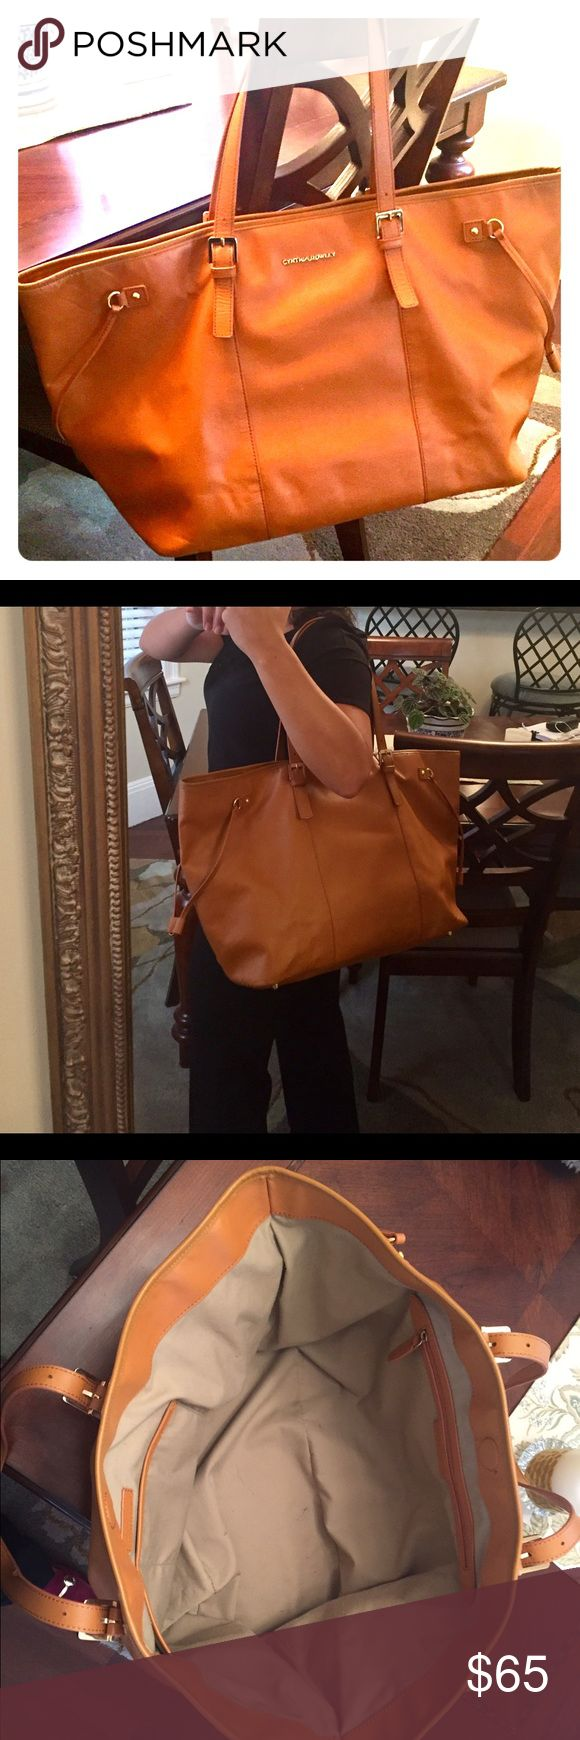 "Cynthia Rowley Tan Leather Extra Large Tote Bag Perfect carry all for a busy day or overnight. Dark tan is versatile for any outfit! Comes with a dust bag. Gently used and some minor scuffs. I am 5'1"" bag is a little too big for me, why I am selling. Cynthia Rowley Bags Totes"